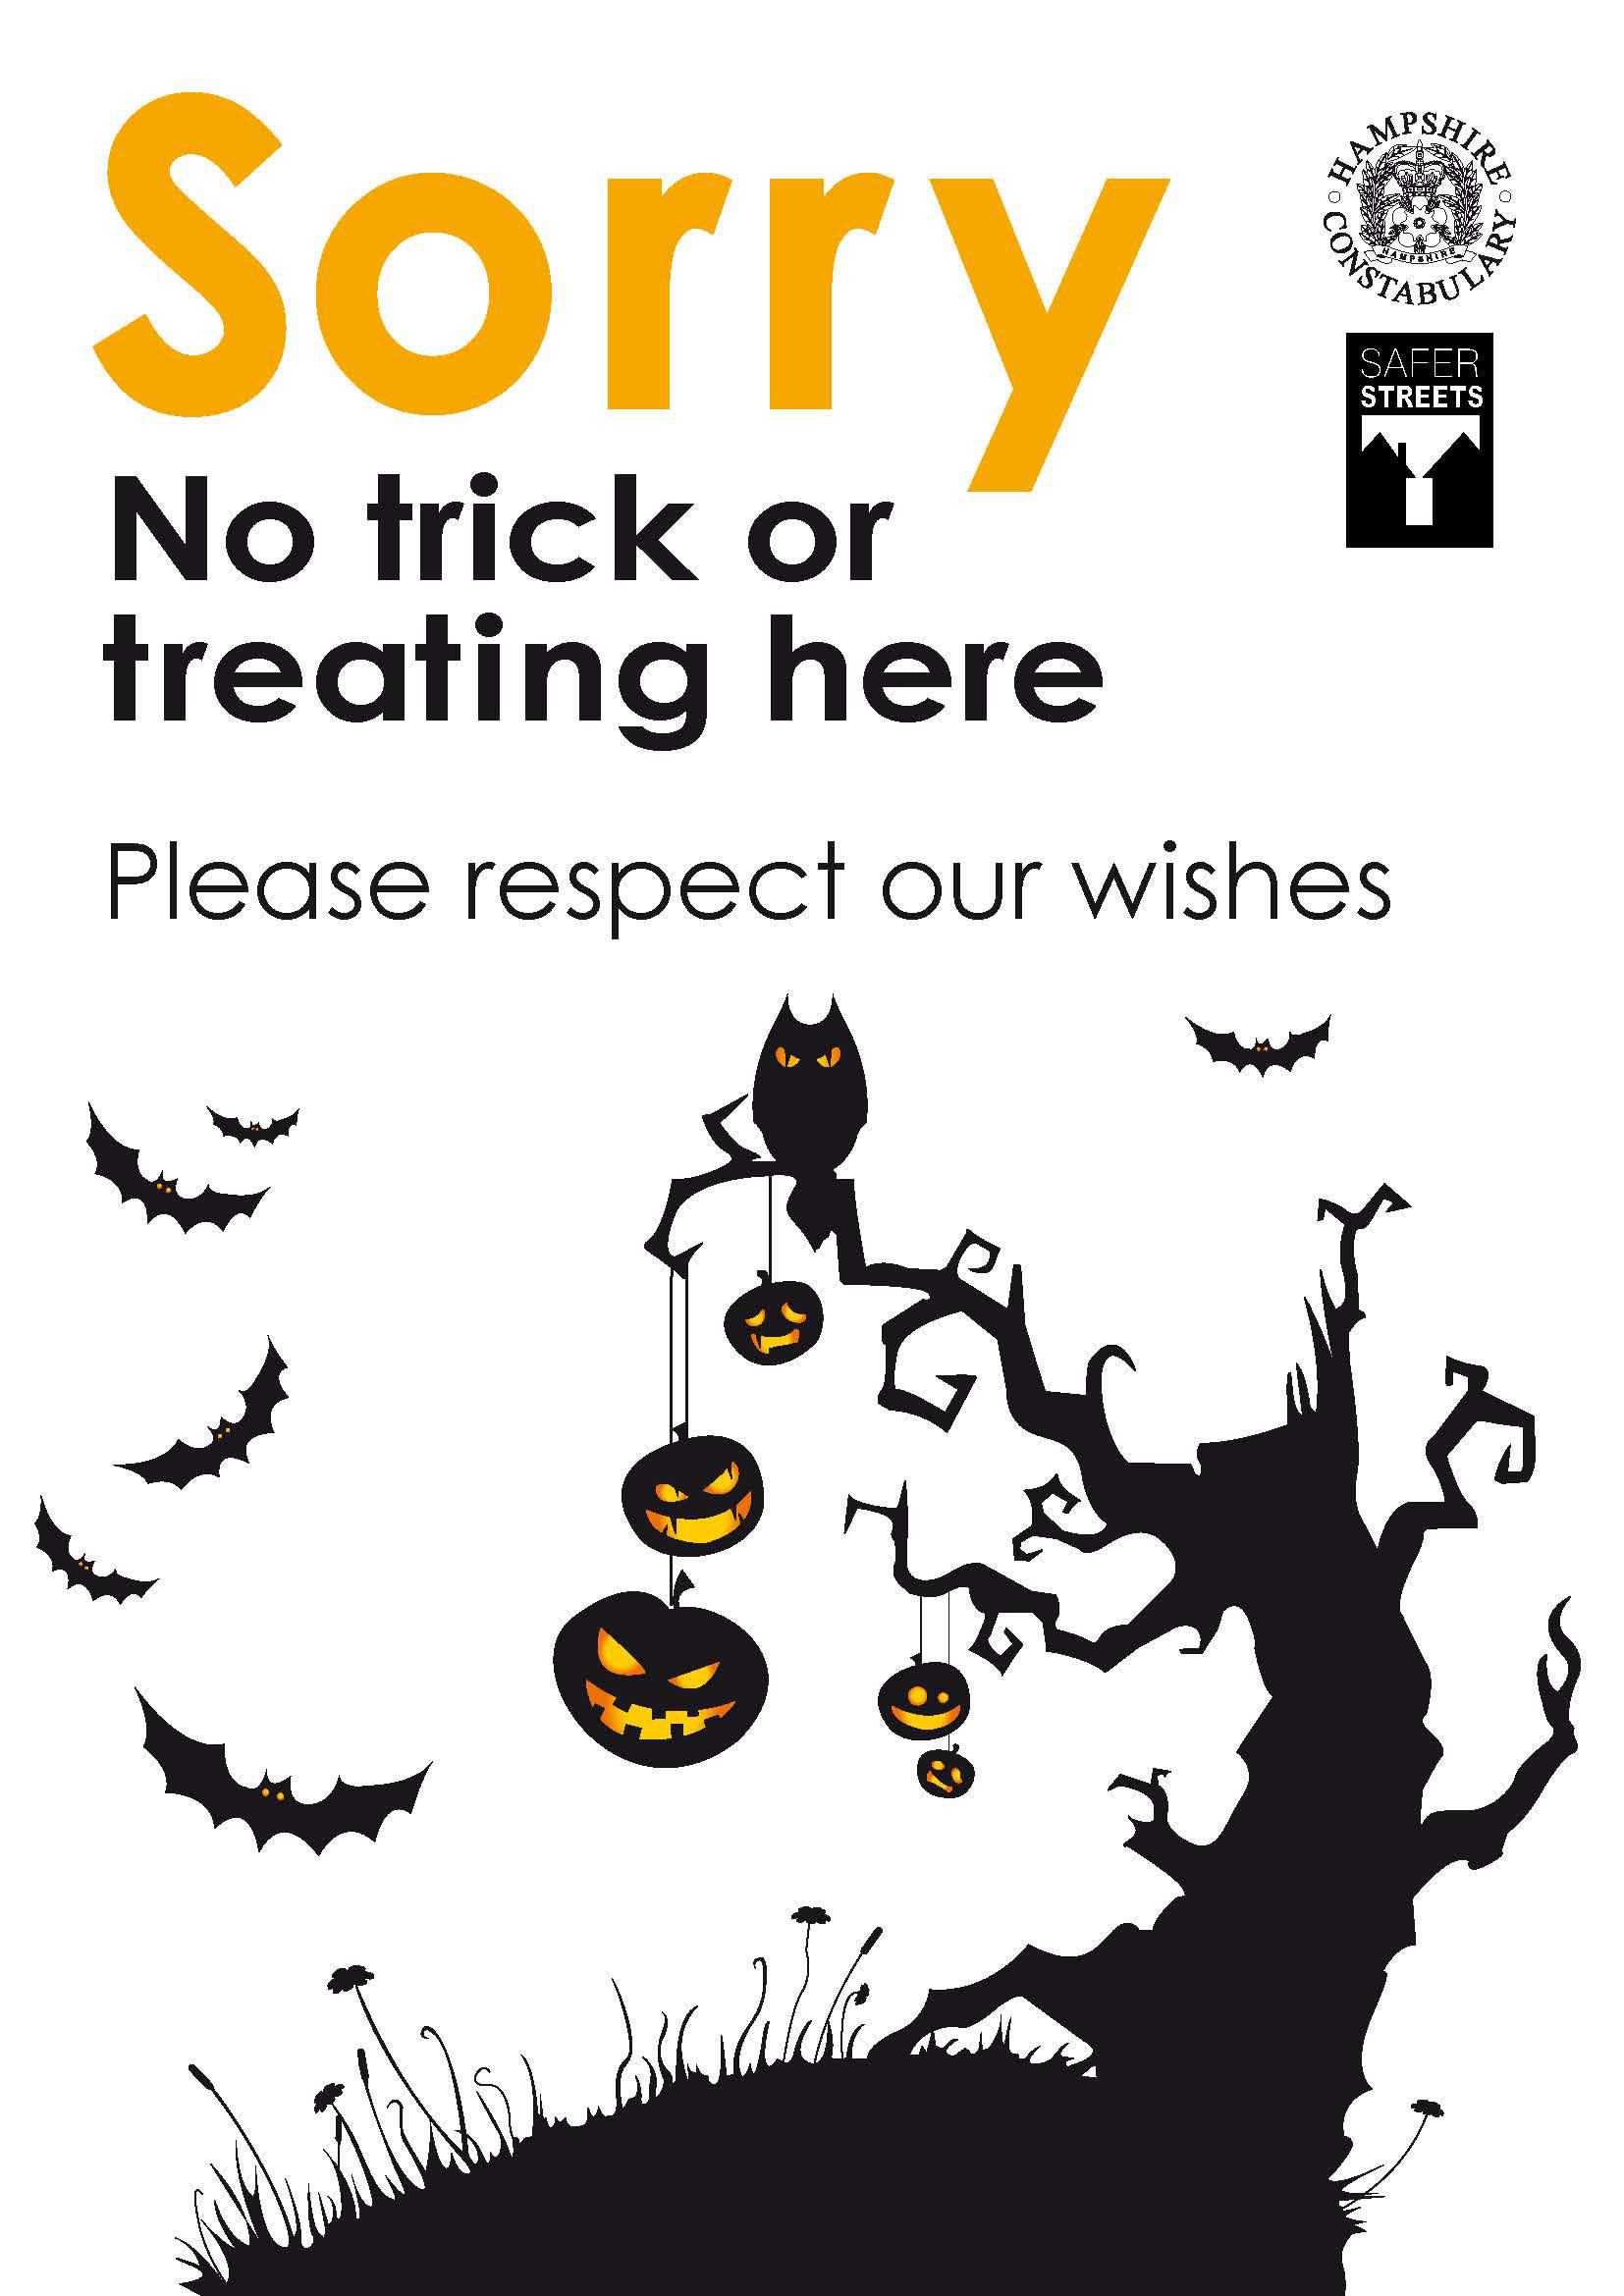 photo about Trick or Treat Signs Printable referred to as Trick or Take care of? Its Not Obligatory Isle of Wight Information